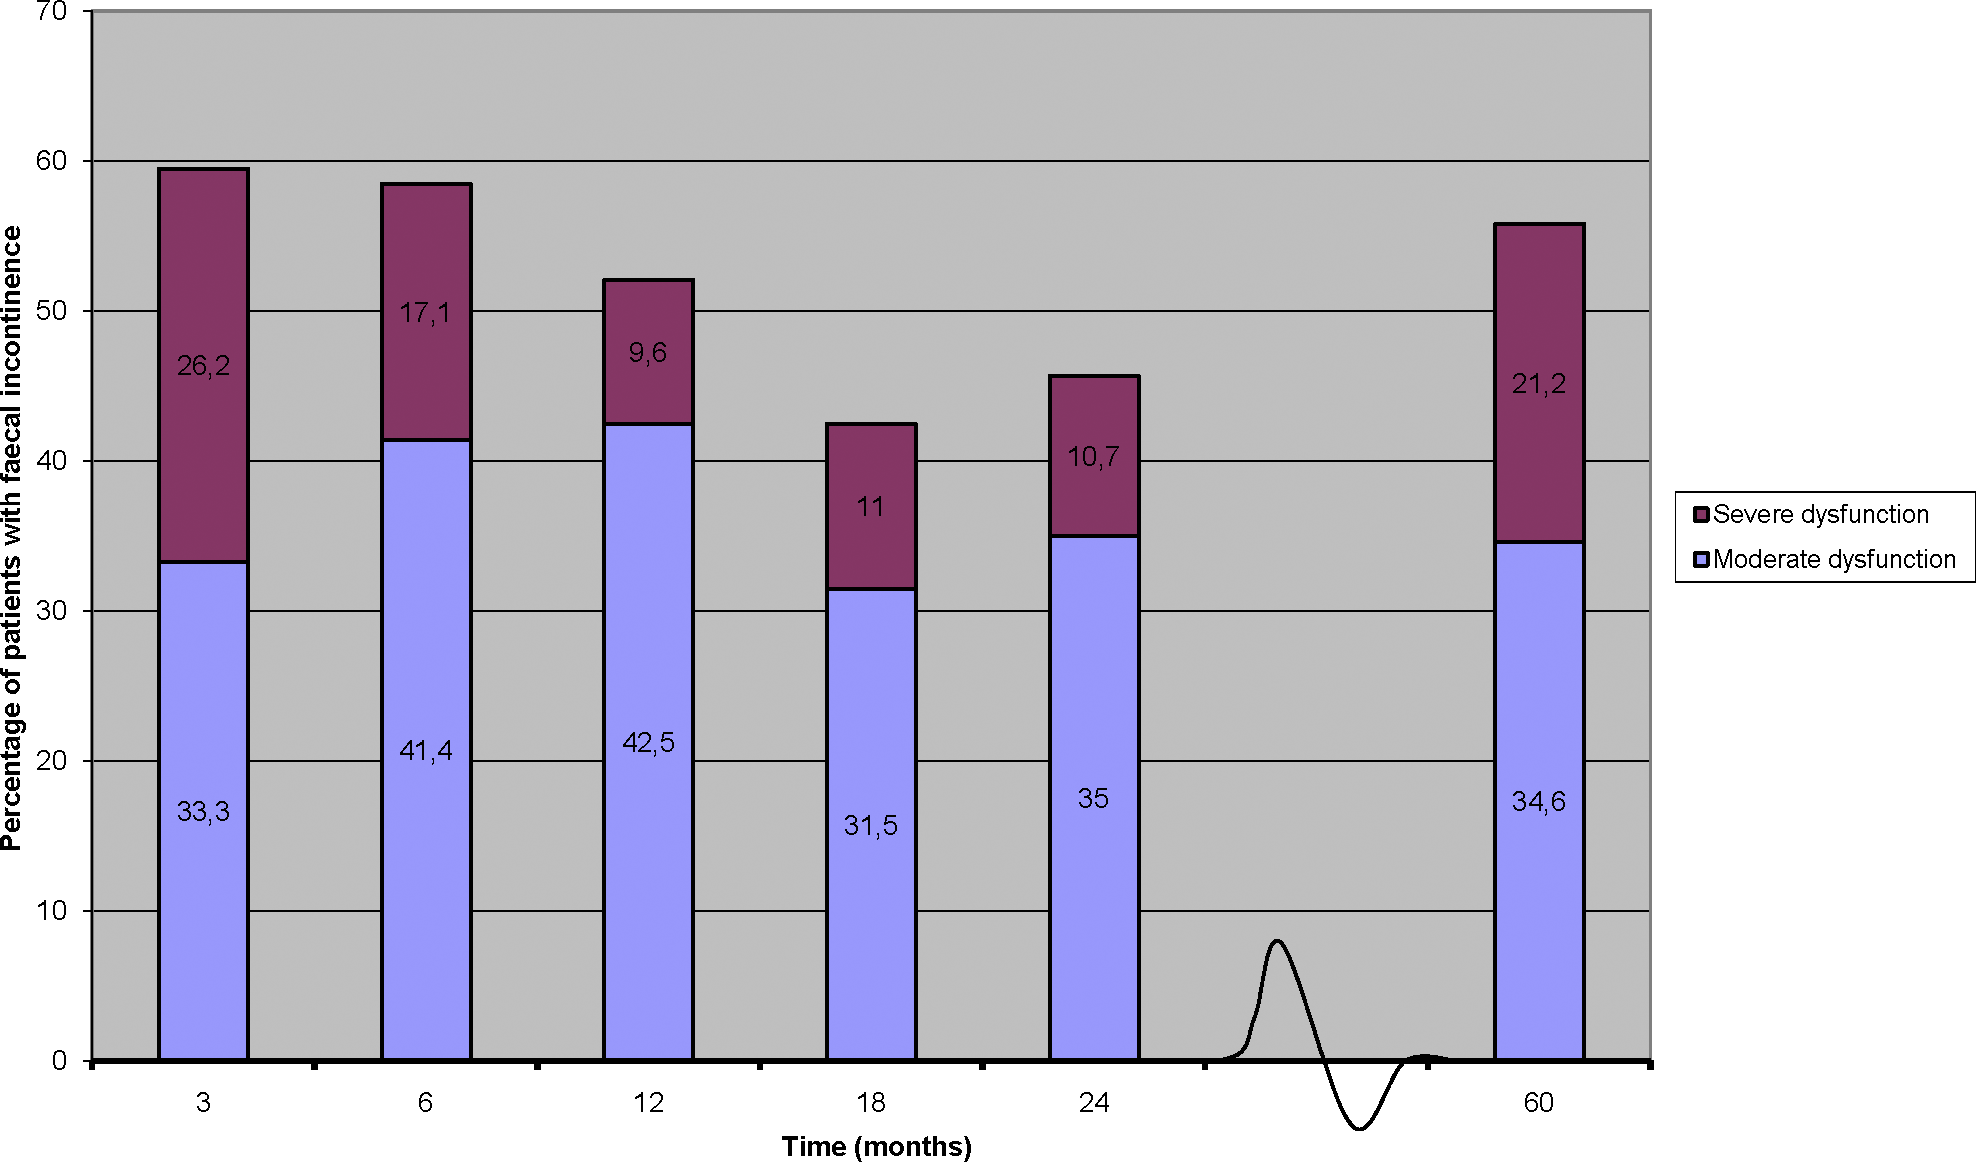 Incidence of Moderate and Severe Faecal Incontinence Reported by Patients Who Participated in the Dutch TME Trial [<em class=&quot;ref&quot;>16</em>] and Were Treated with Pre-Operative Radiotherapy